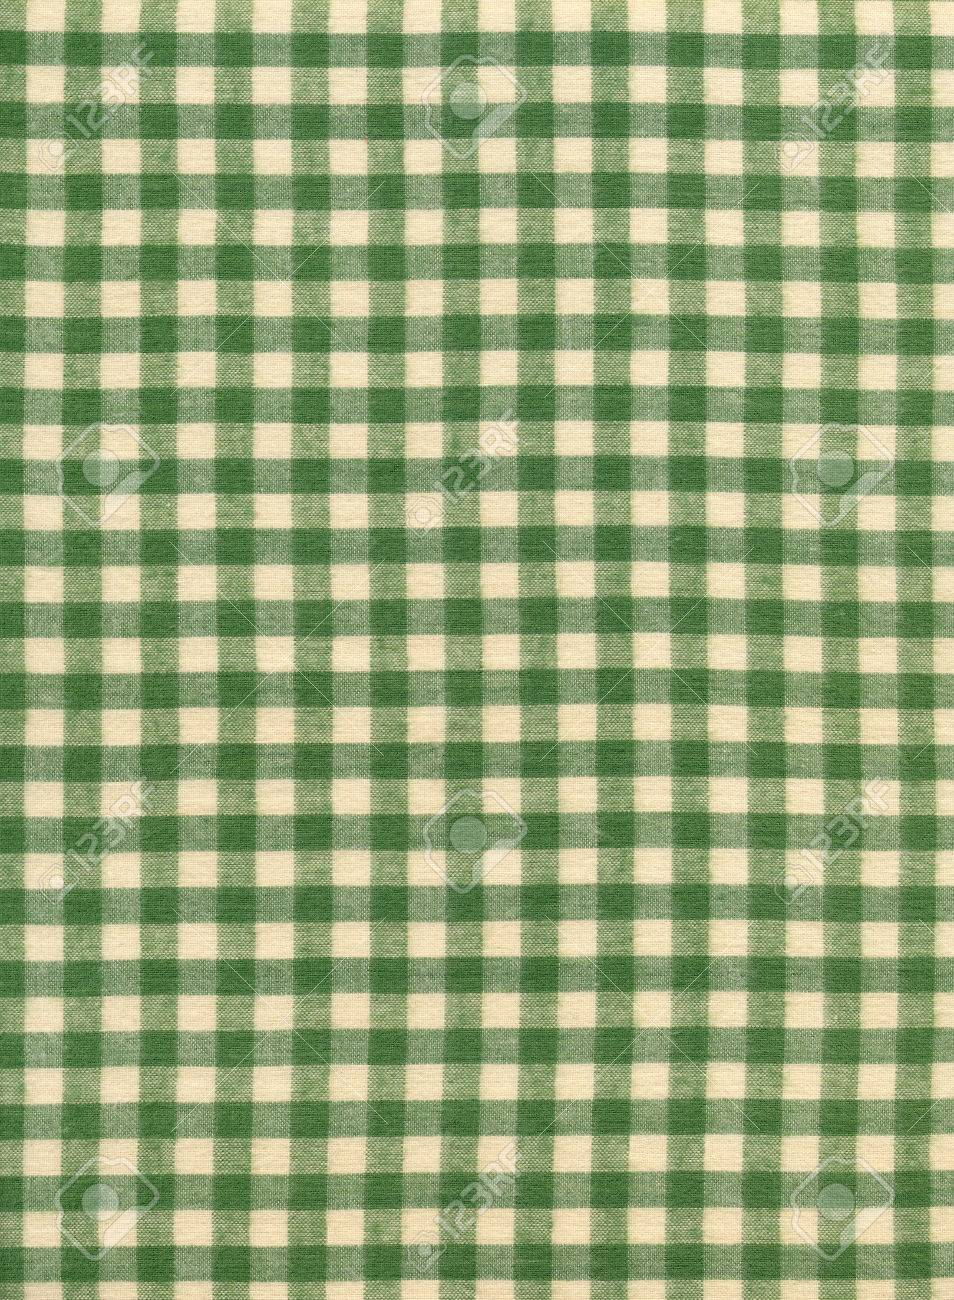 Green And White Checkered Tablecloth Textile Fabric Background Stock Photo    24196423